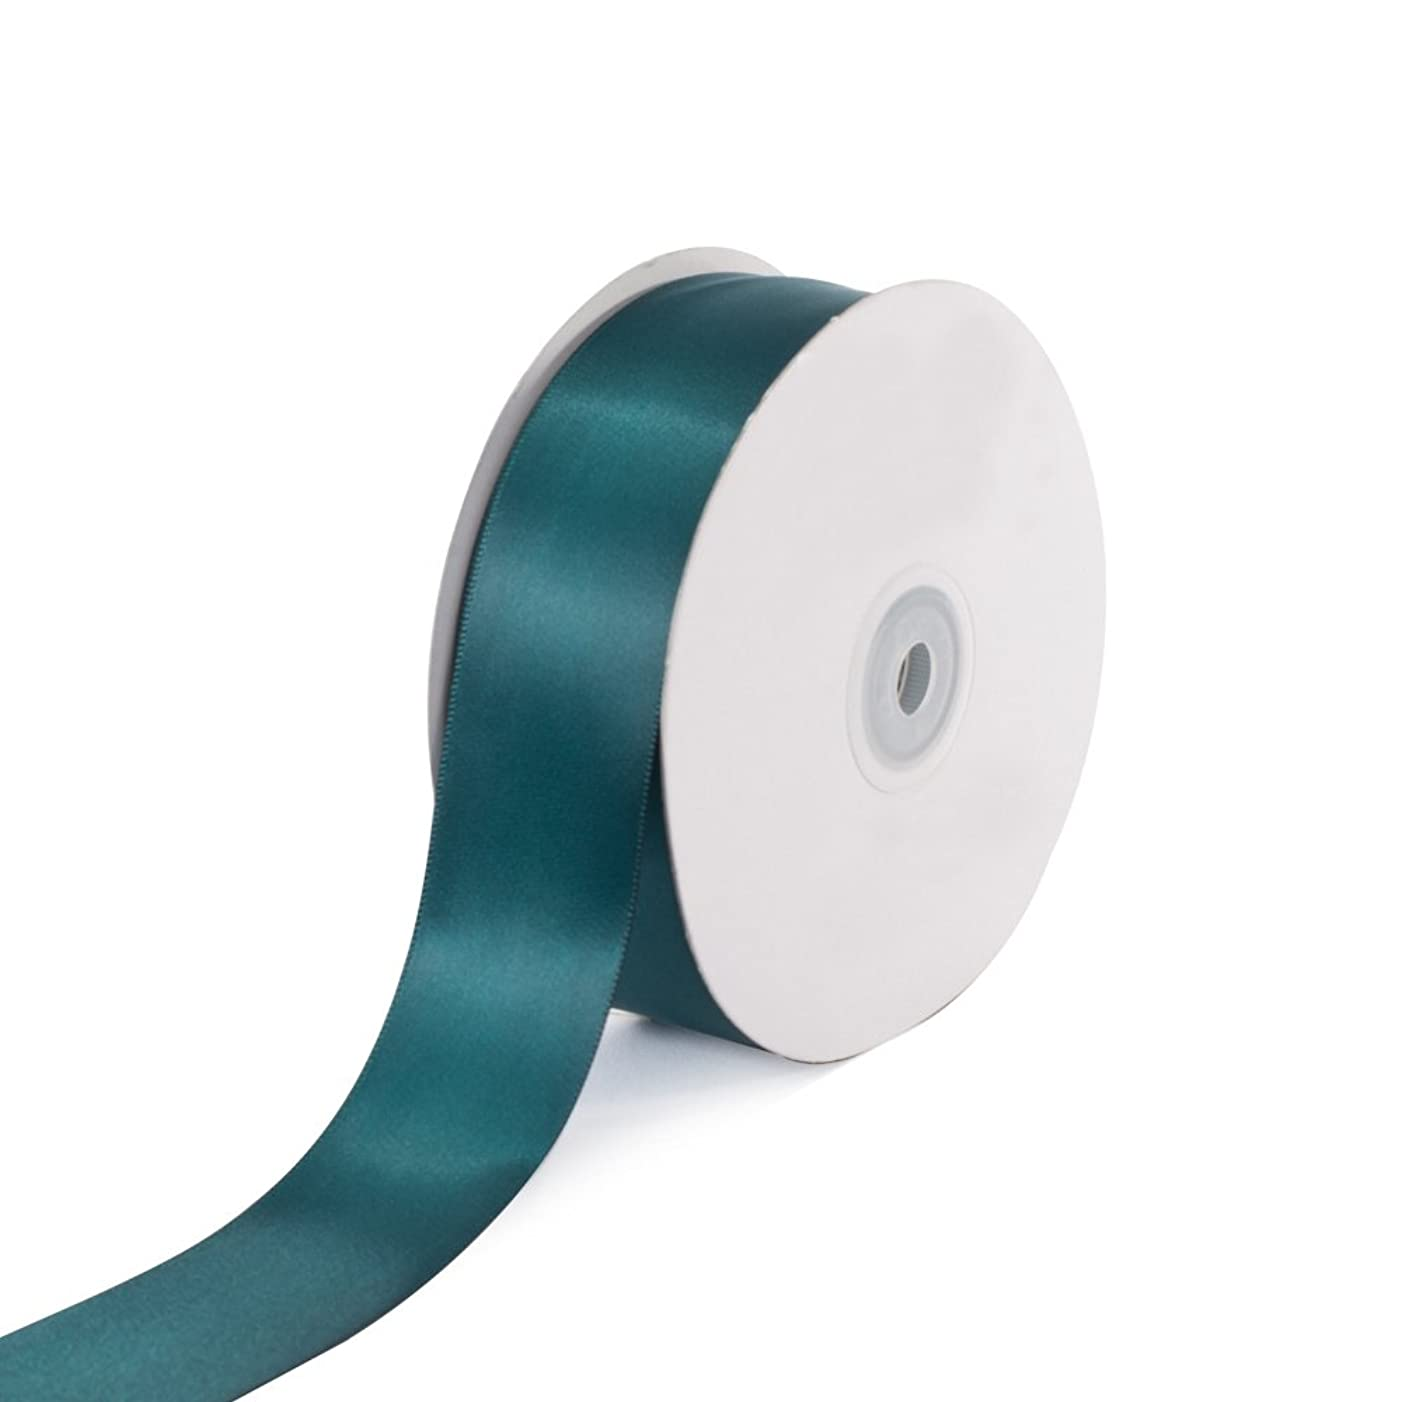 Creative Ideas Solid Satin Ribbon, 1-1/2-Inch by 50 Yard, Hunter Green, Solid